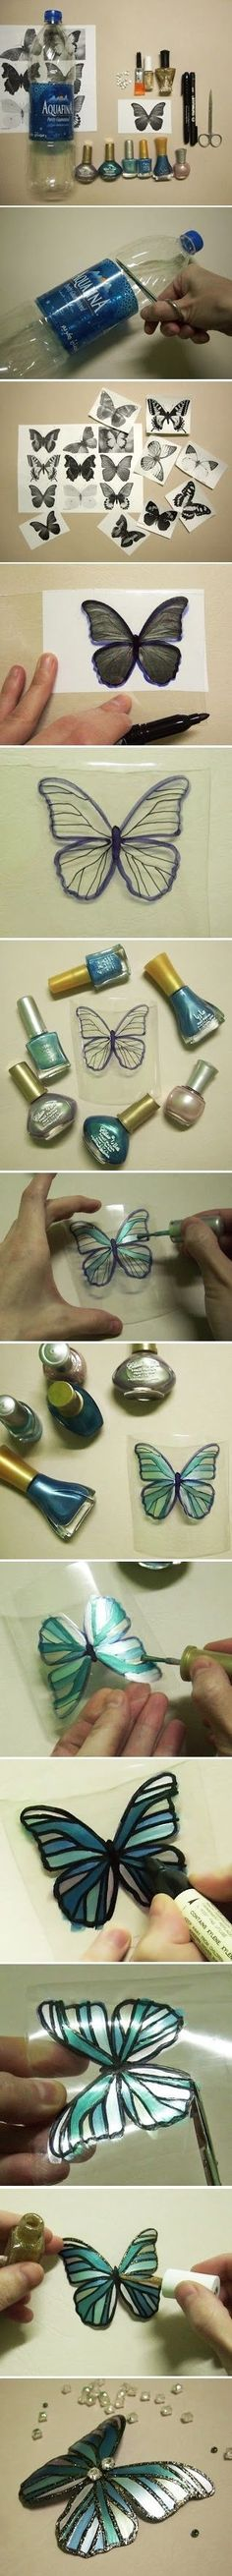 DIY Butterflies diy crafts craft ideas easy crafts diy ideas diy idea diy home diy vase easy diy for the home crafty decor home ideas diy decorations